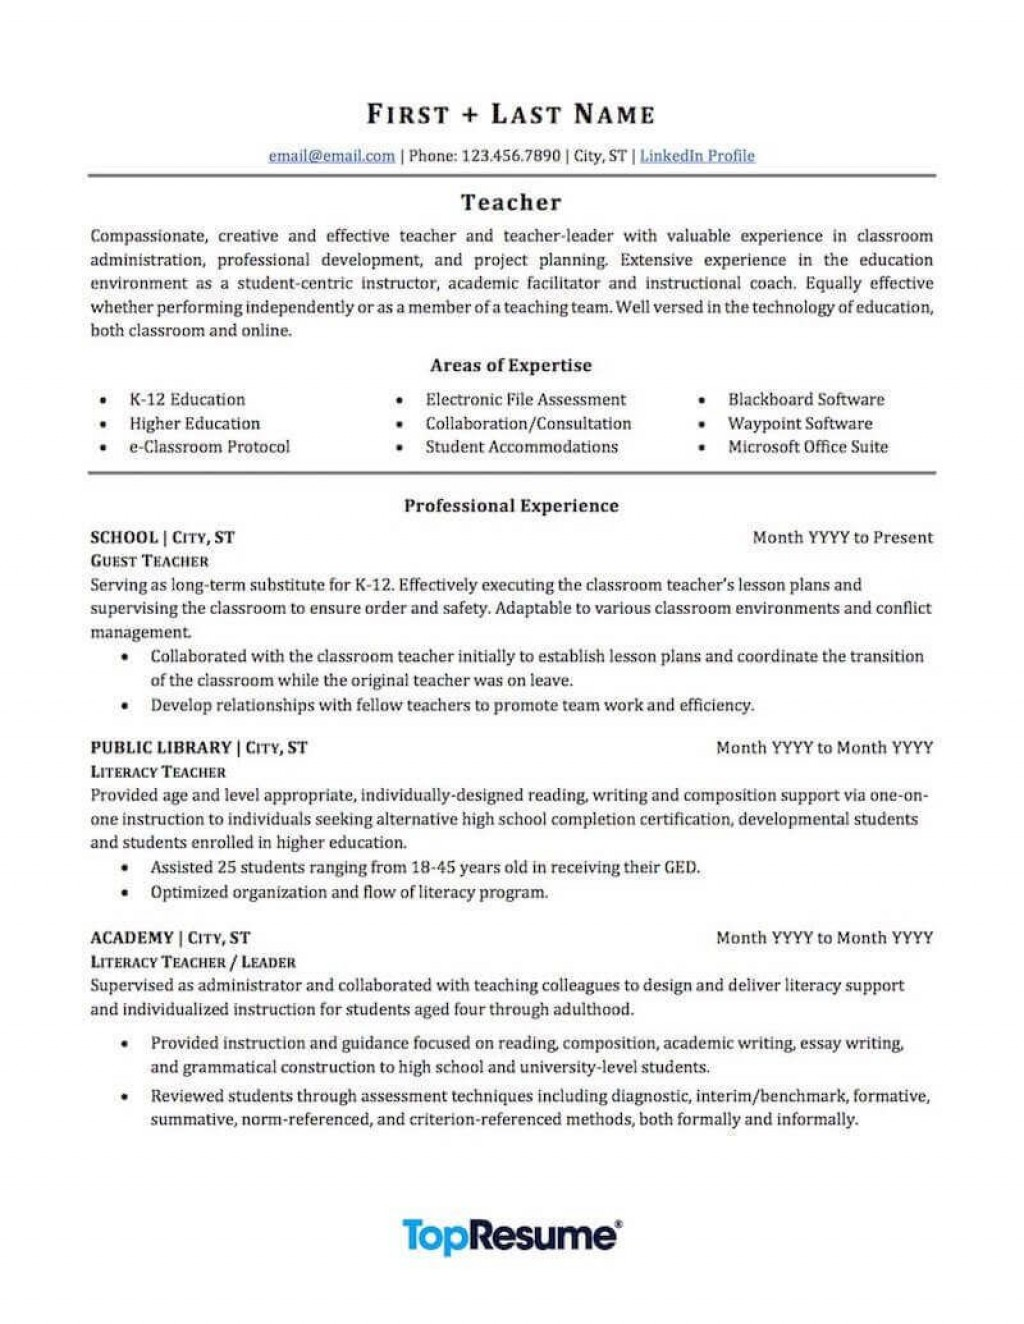 007 Top Resume Example For Teaching Job Concept  Jobs Format Sample Curriculum Vitae Profession In IndiaLarge